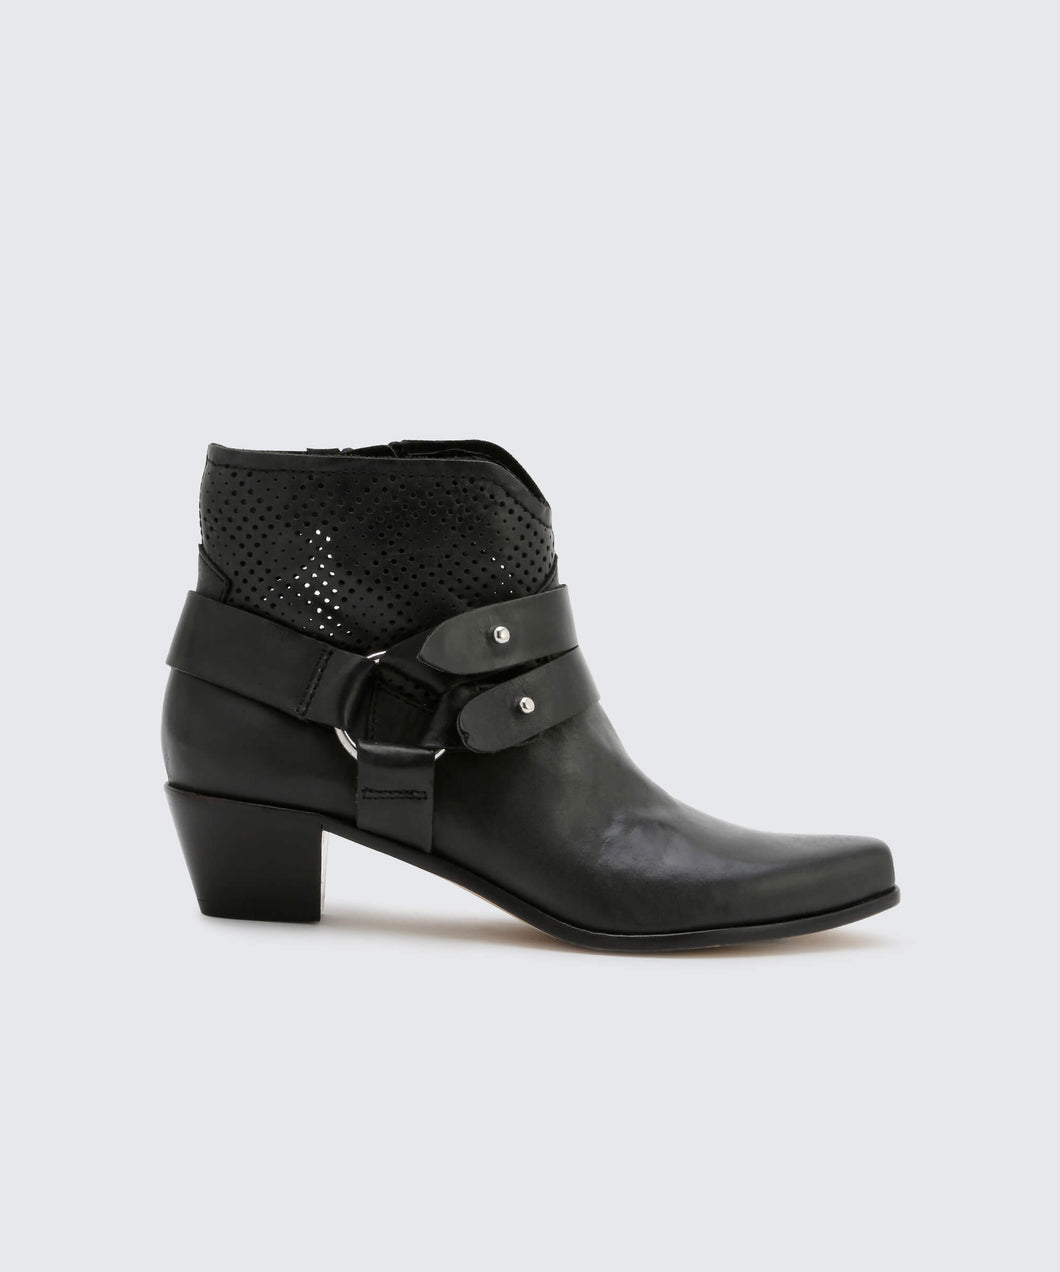 SOL BOOTIES IN BLACK -   Dolce Vita